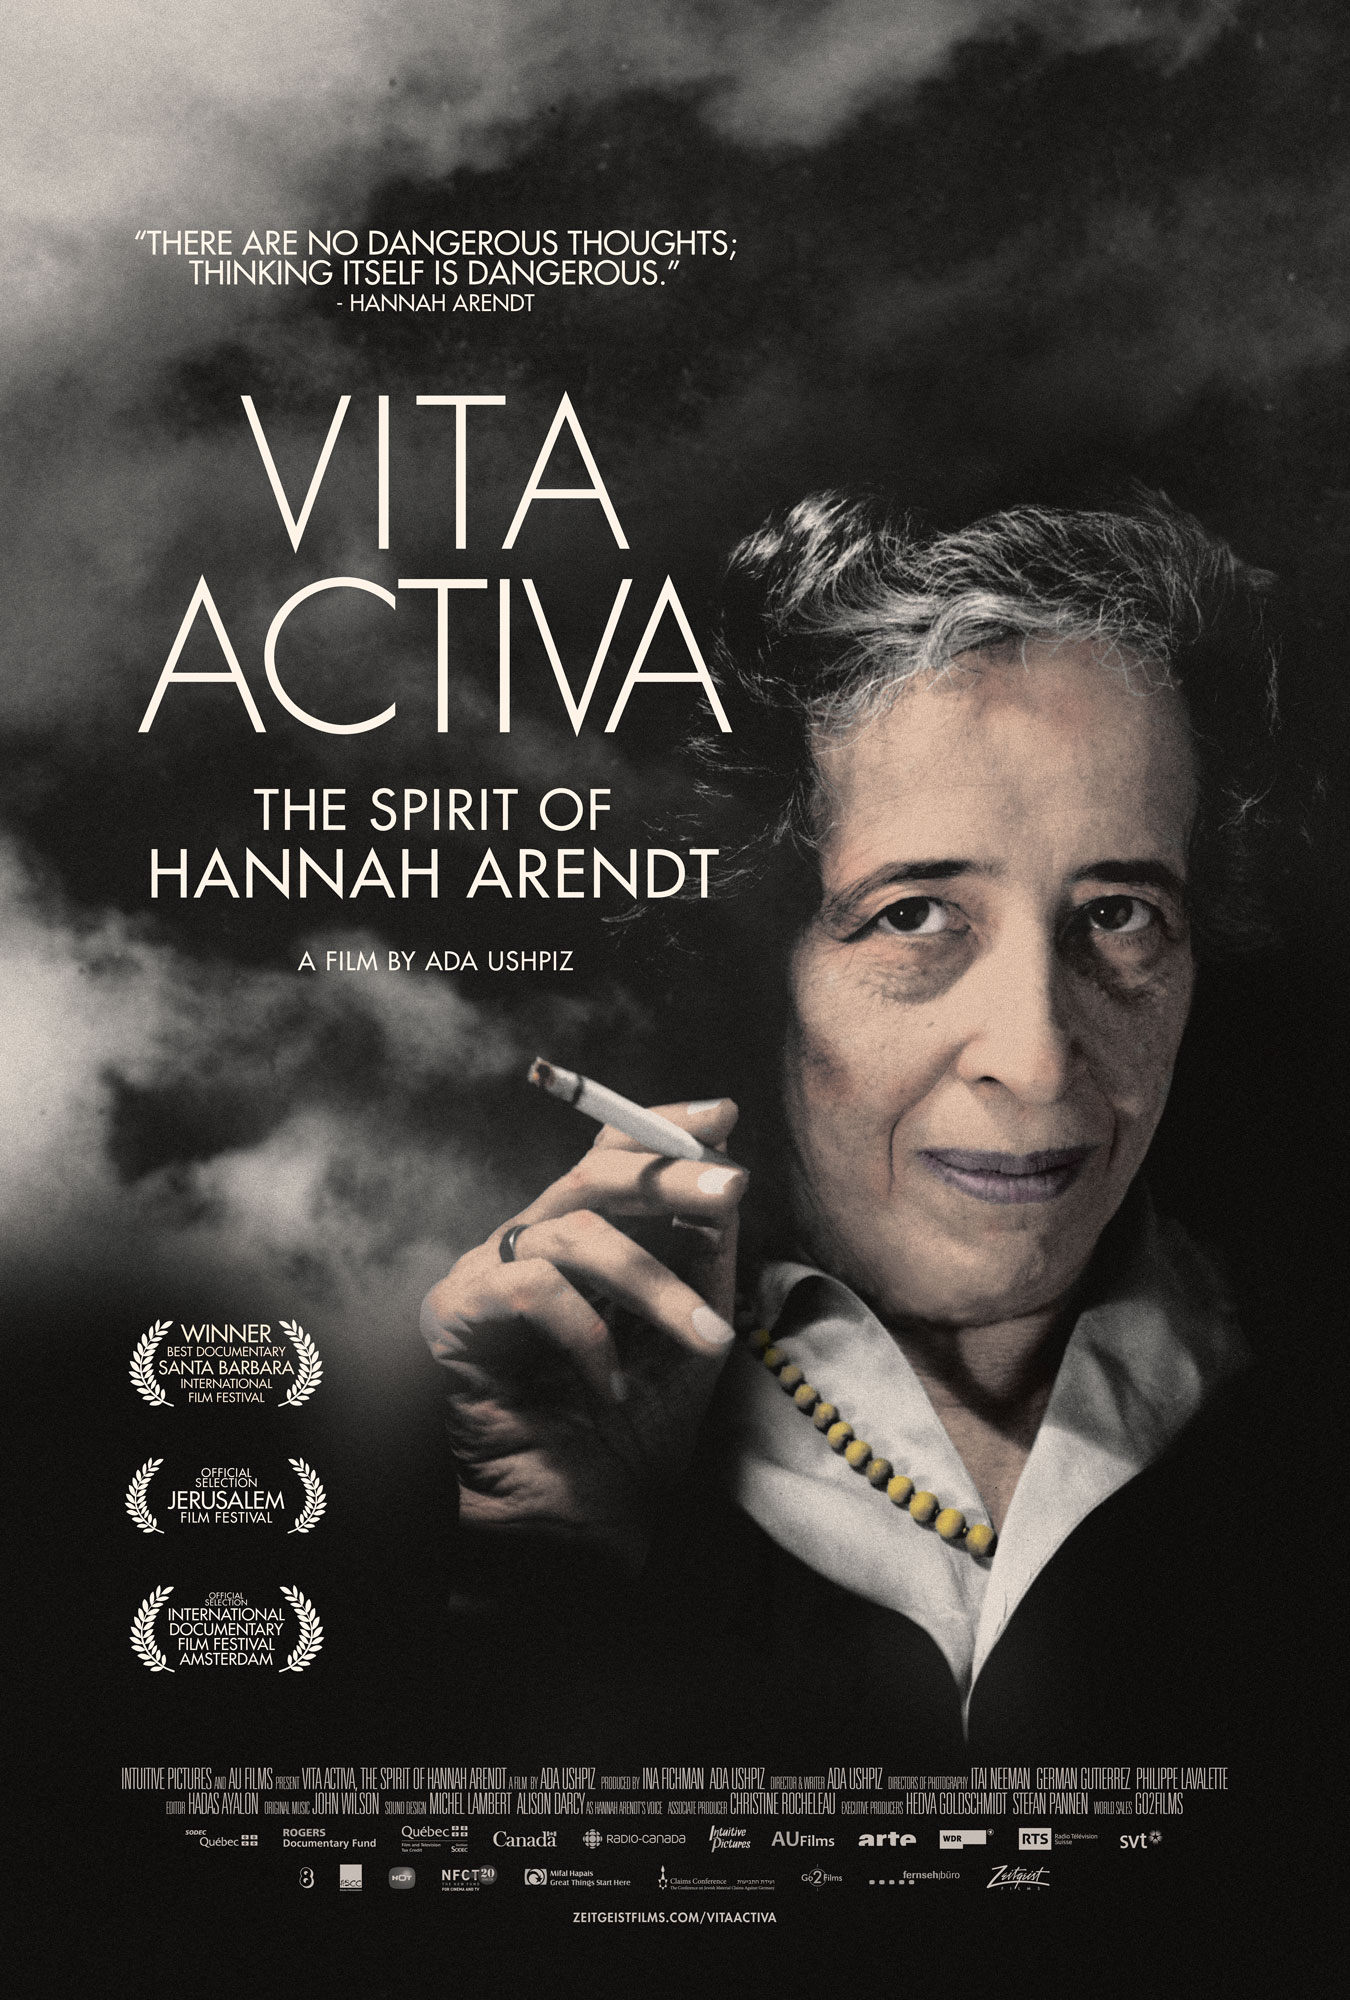 Vita ActiveaThe Spirit of Hannah Arendt